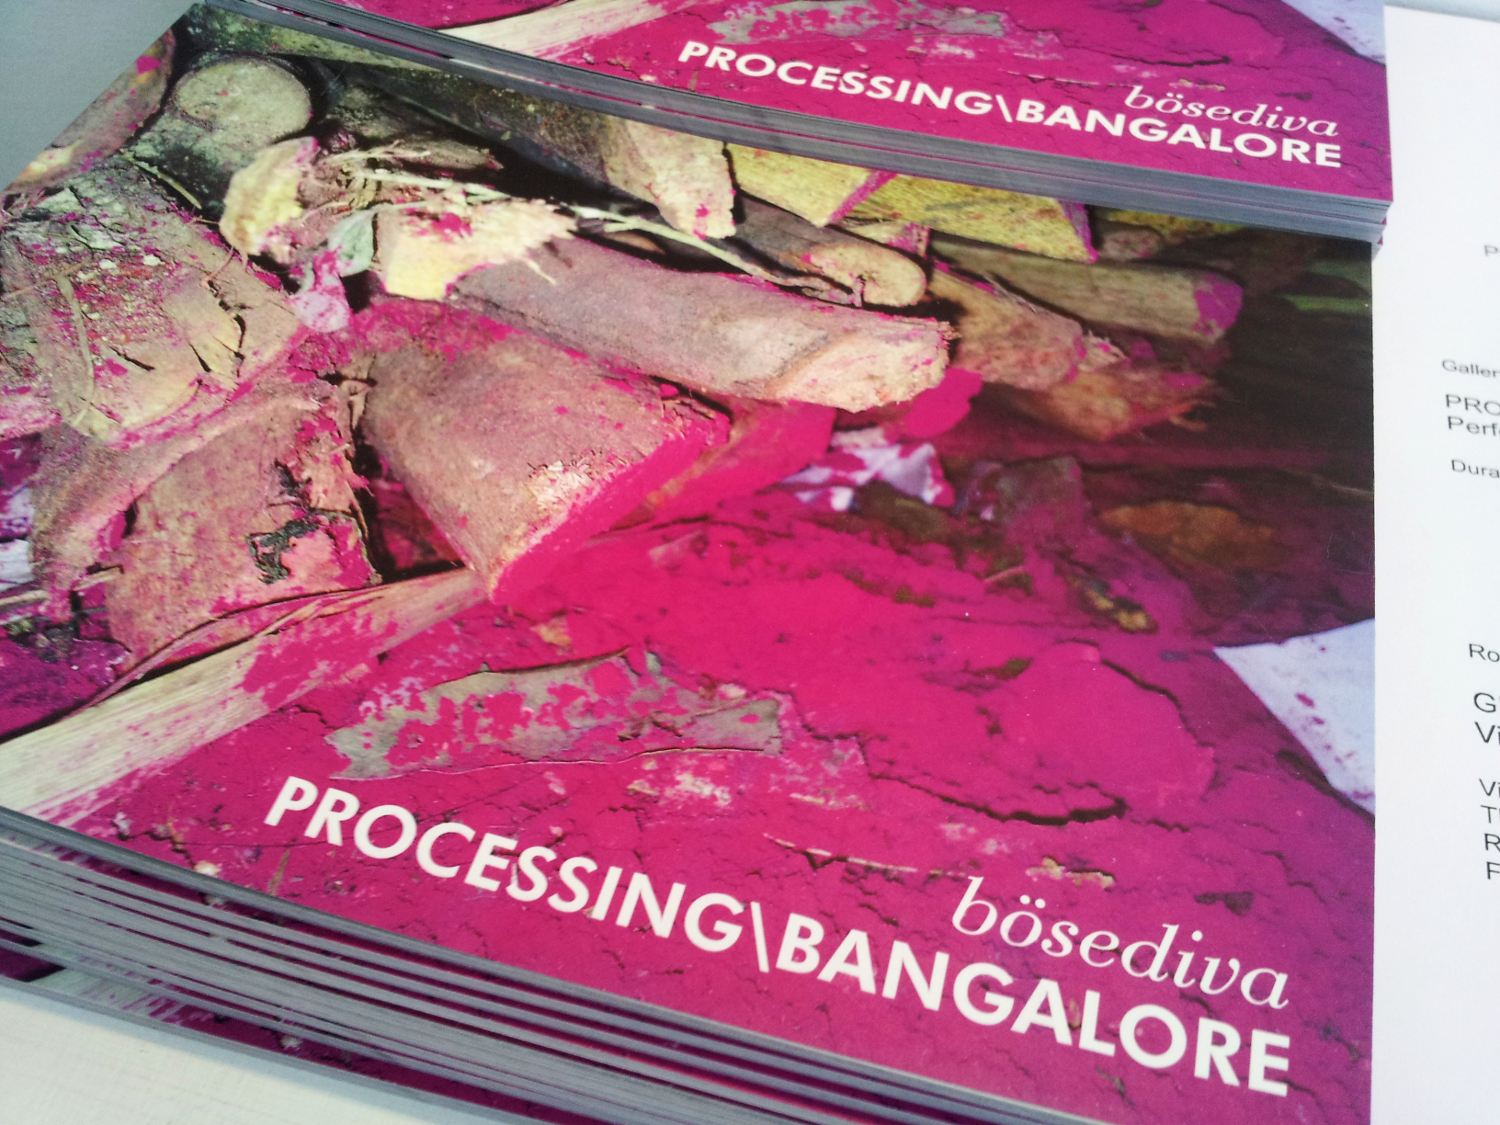 PROCESSSING \ BANGALORE - the book